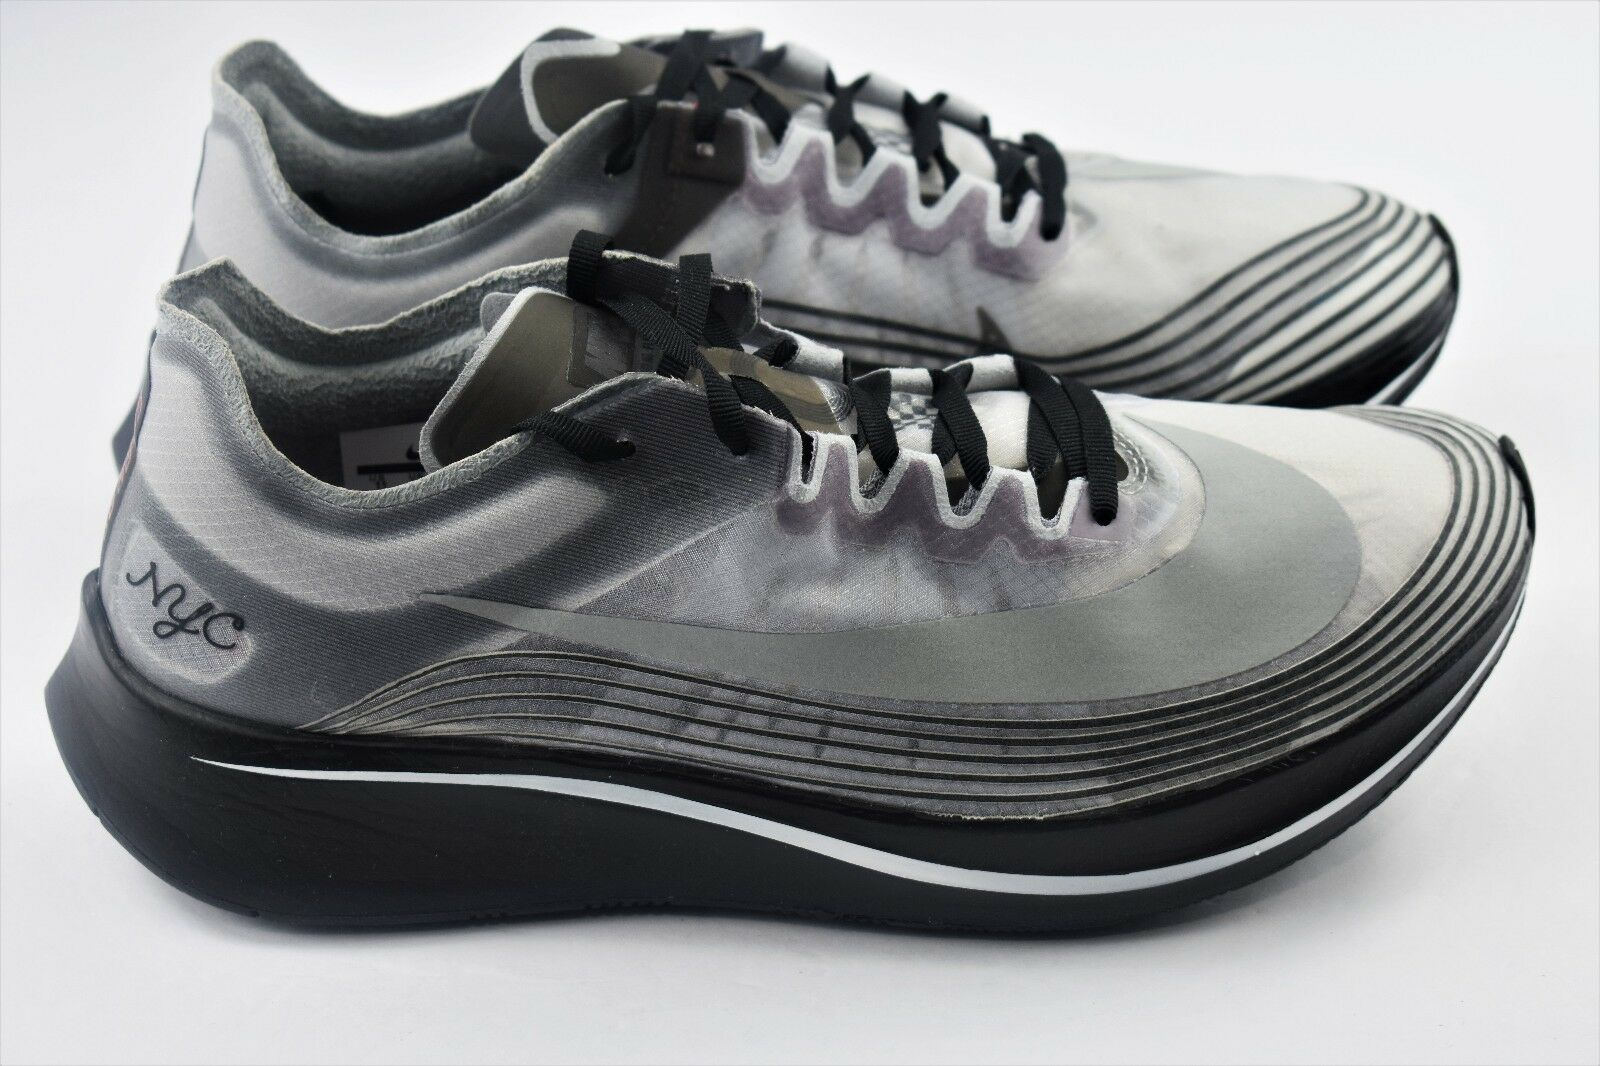 Nike Nikelab Zoom Fly NYC Mens Size 5 SP Running Shoes Womens Size 6.5 AH5088